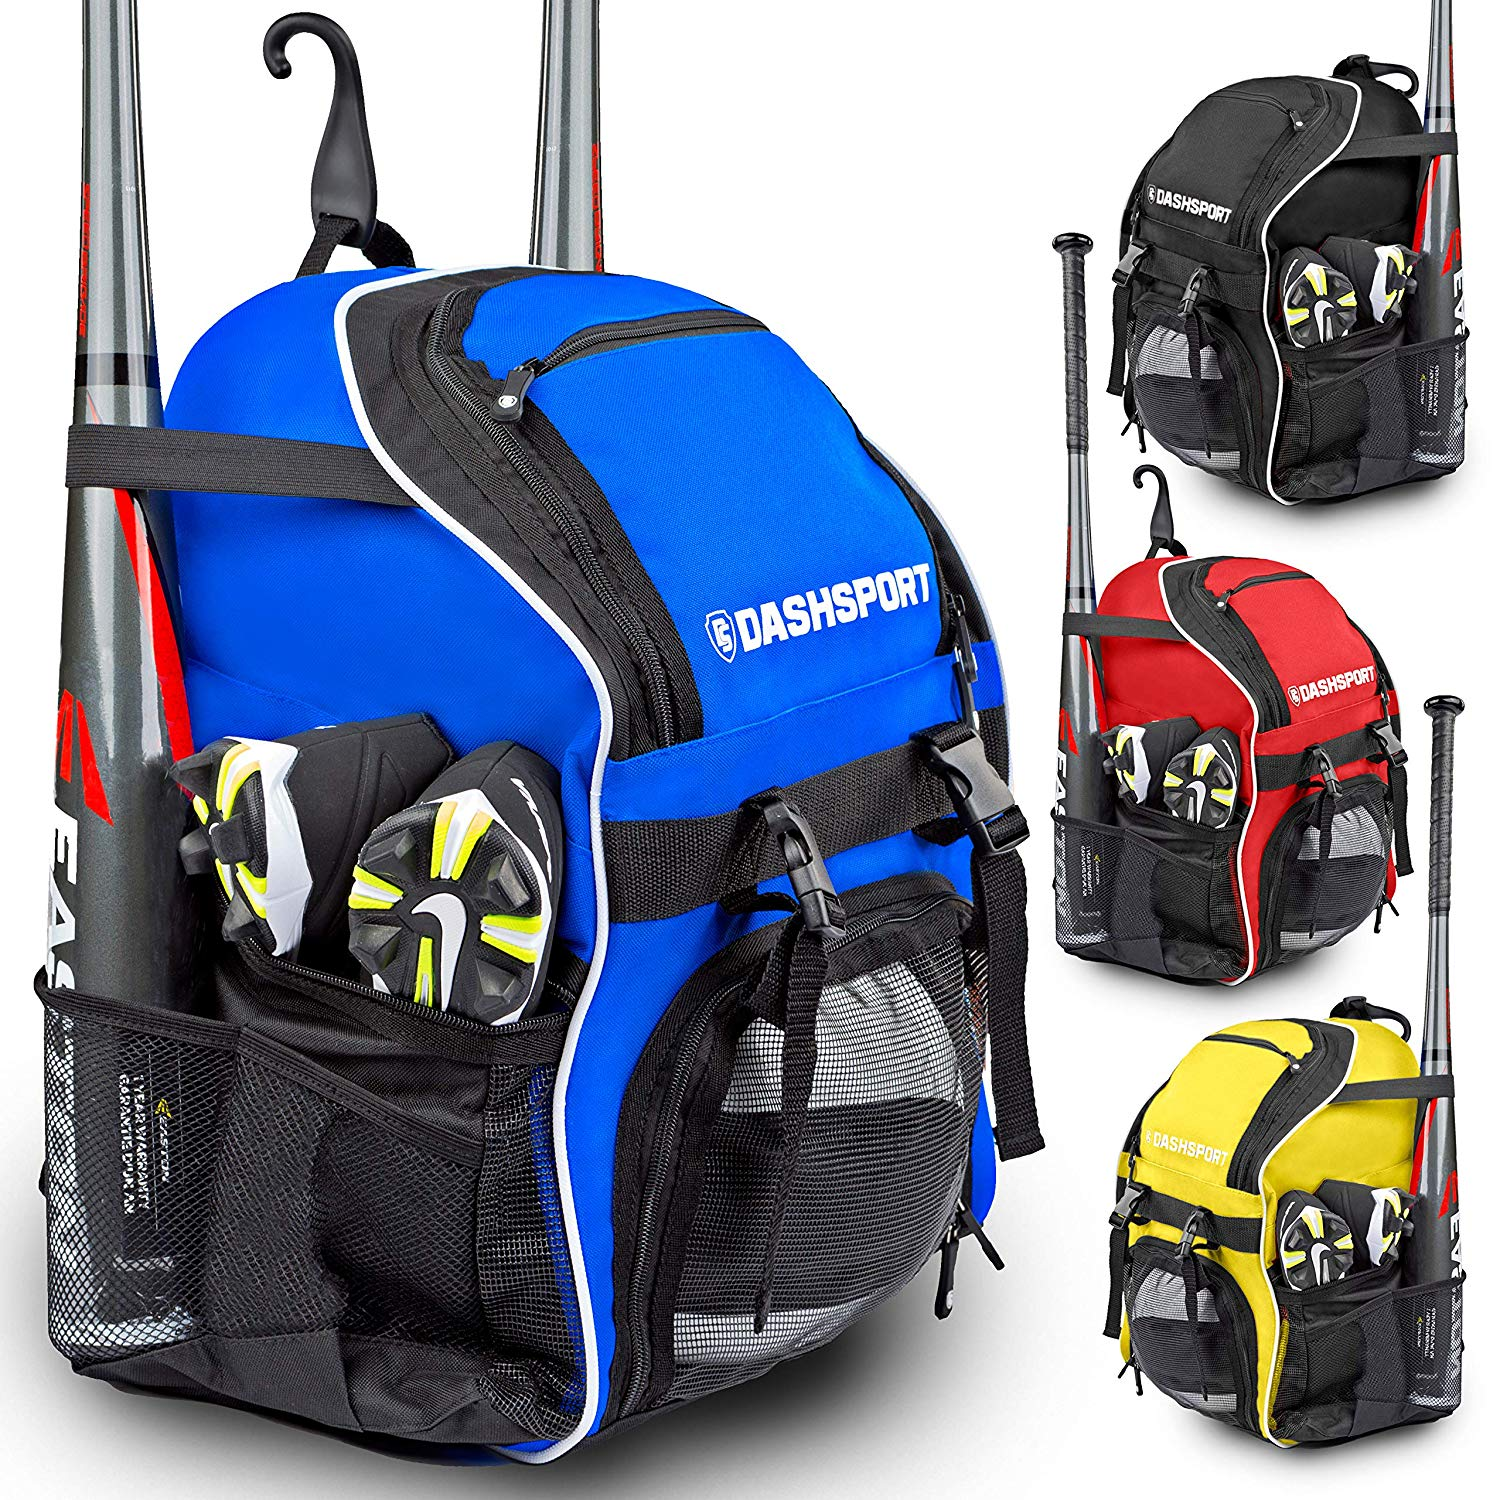 DashSport Baseball Bag